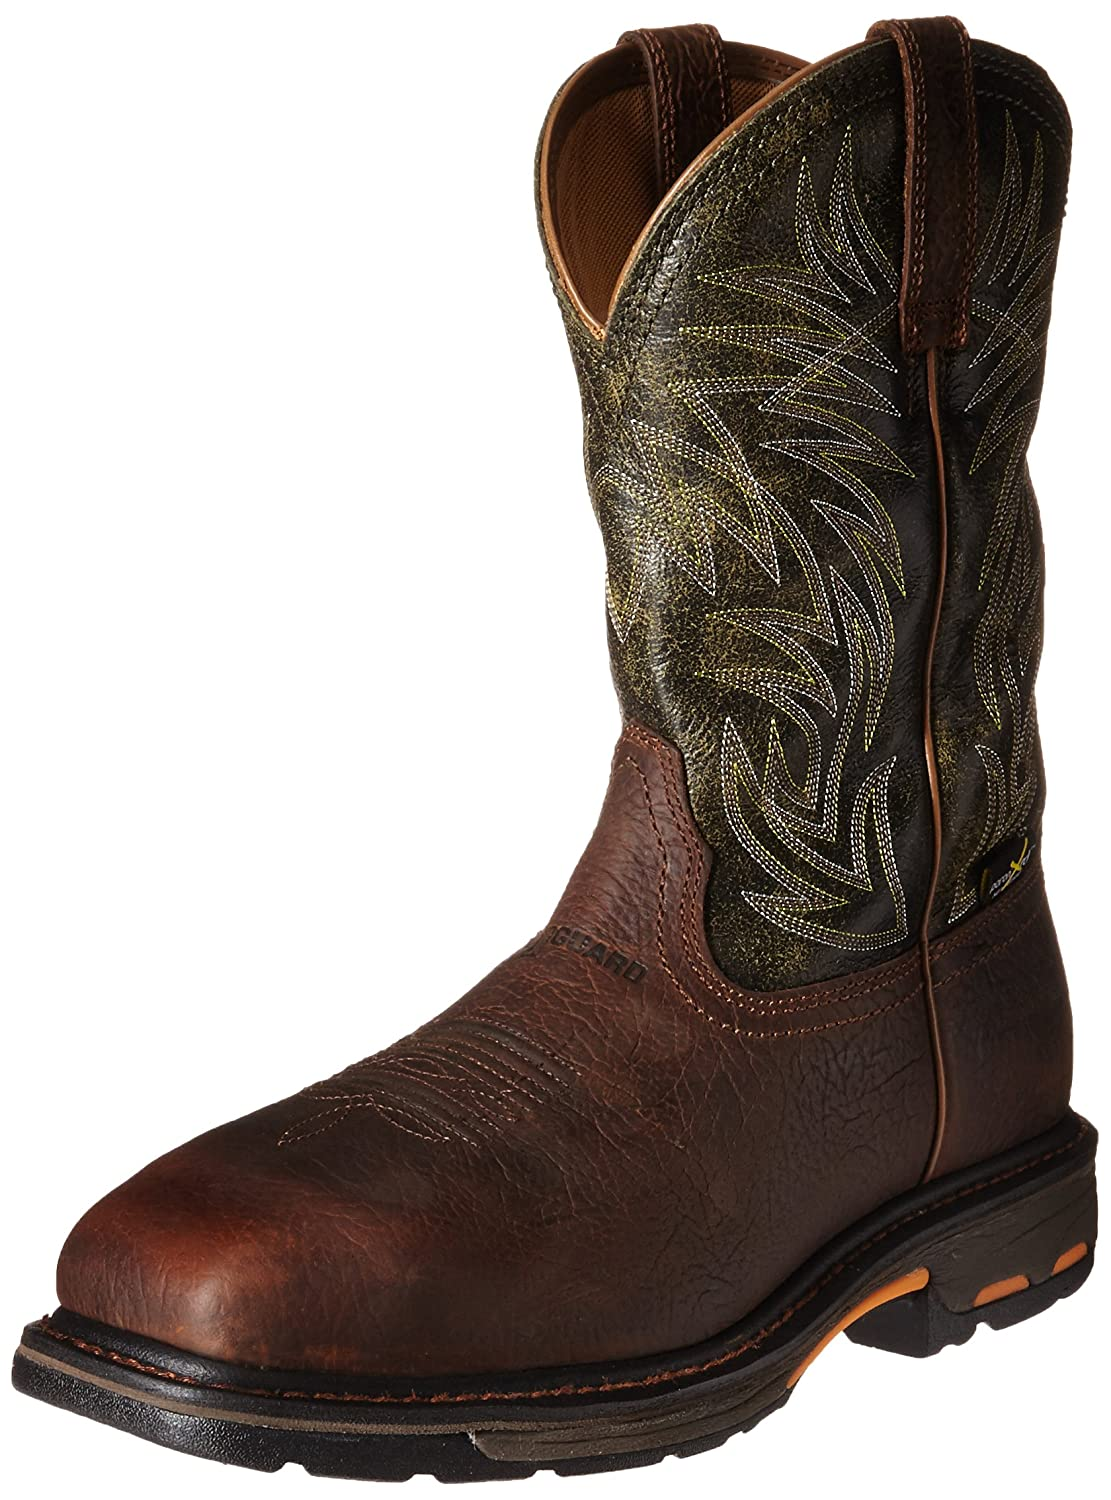 Ariat メンズ B00UA03LQK 9 D(M) US|Ridge Brown/Moss Green Ridge Brown/Moss Green 9 D(M) US